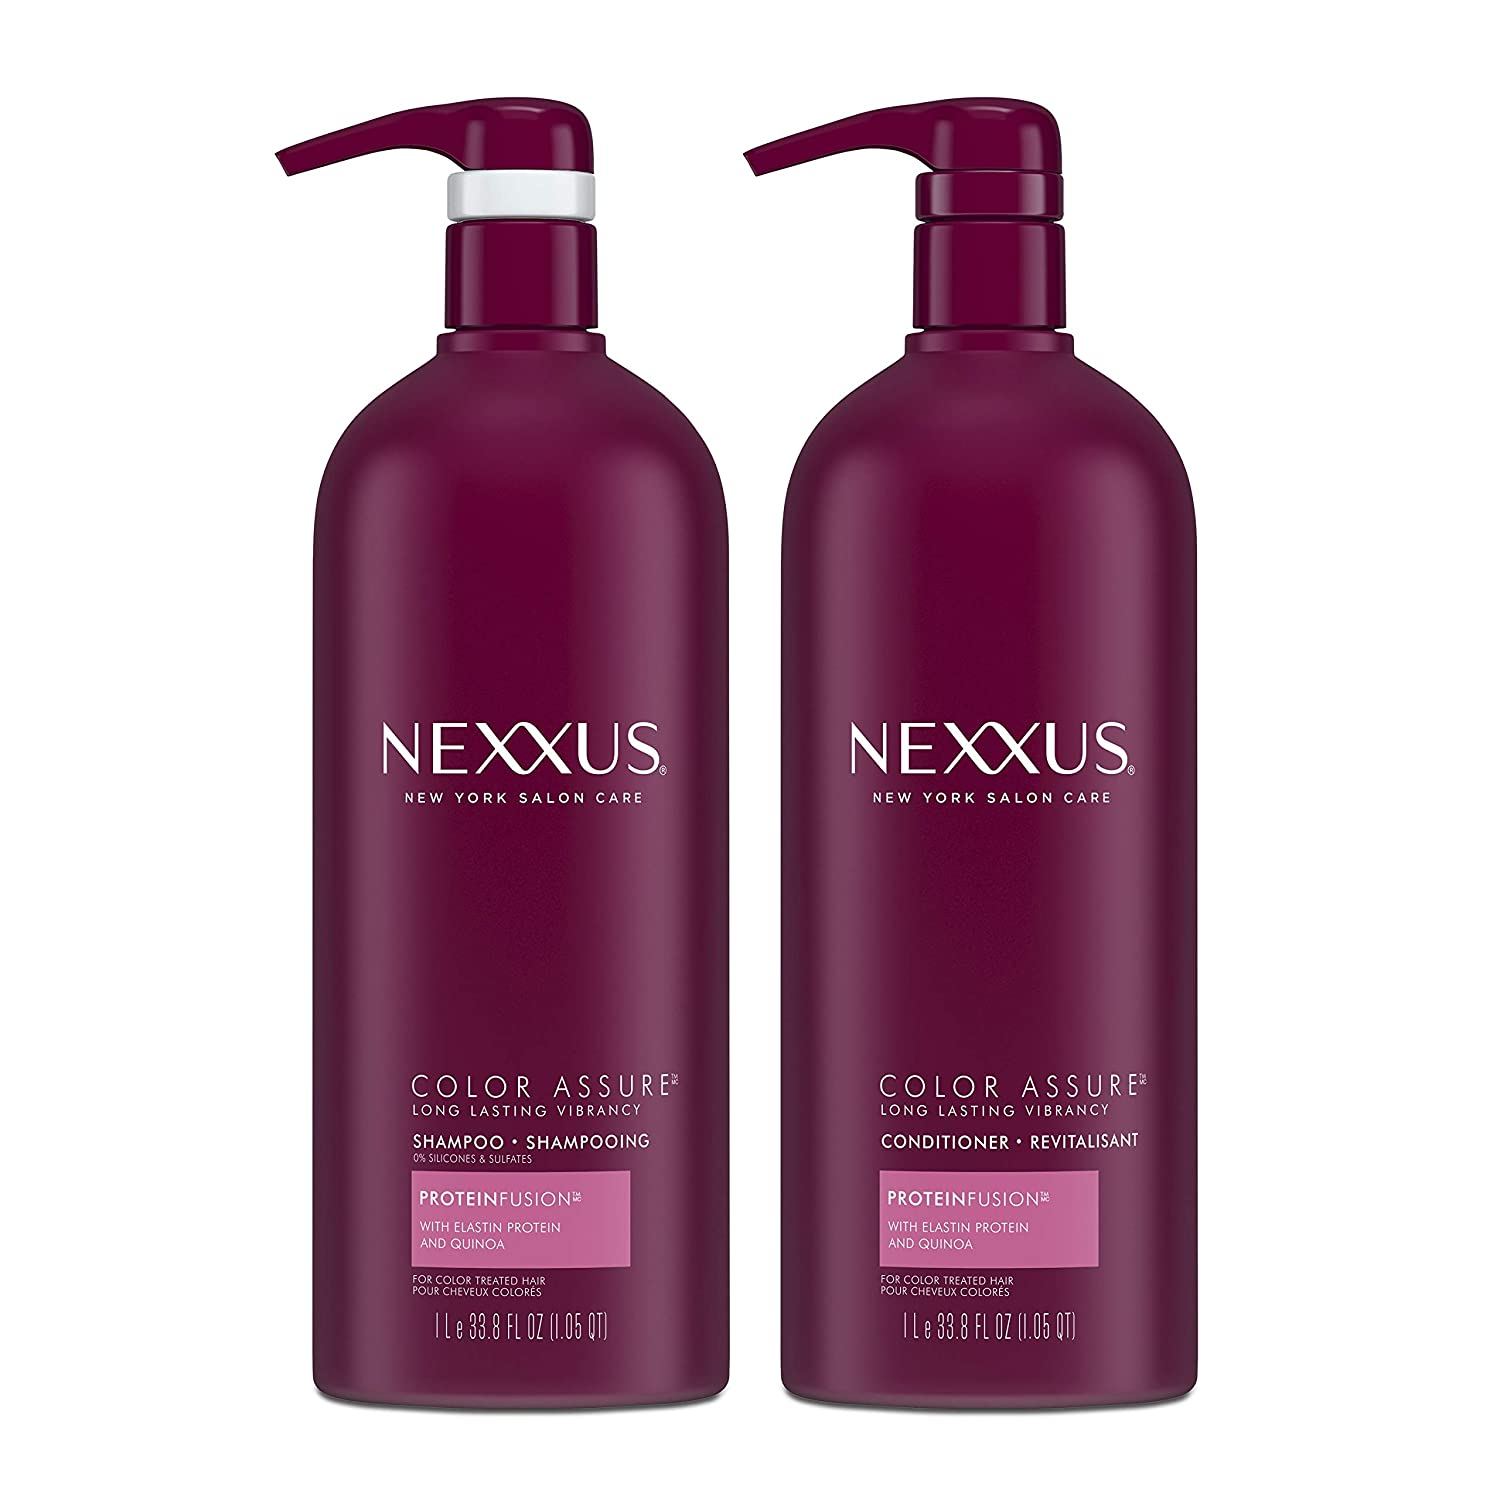 Nexxus Color Assure Shampoo and Conditioner For Color Treated Hair ProteinFusion Enhance Hair Color For Up To 40 Washes 33.8 oz 2 count